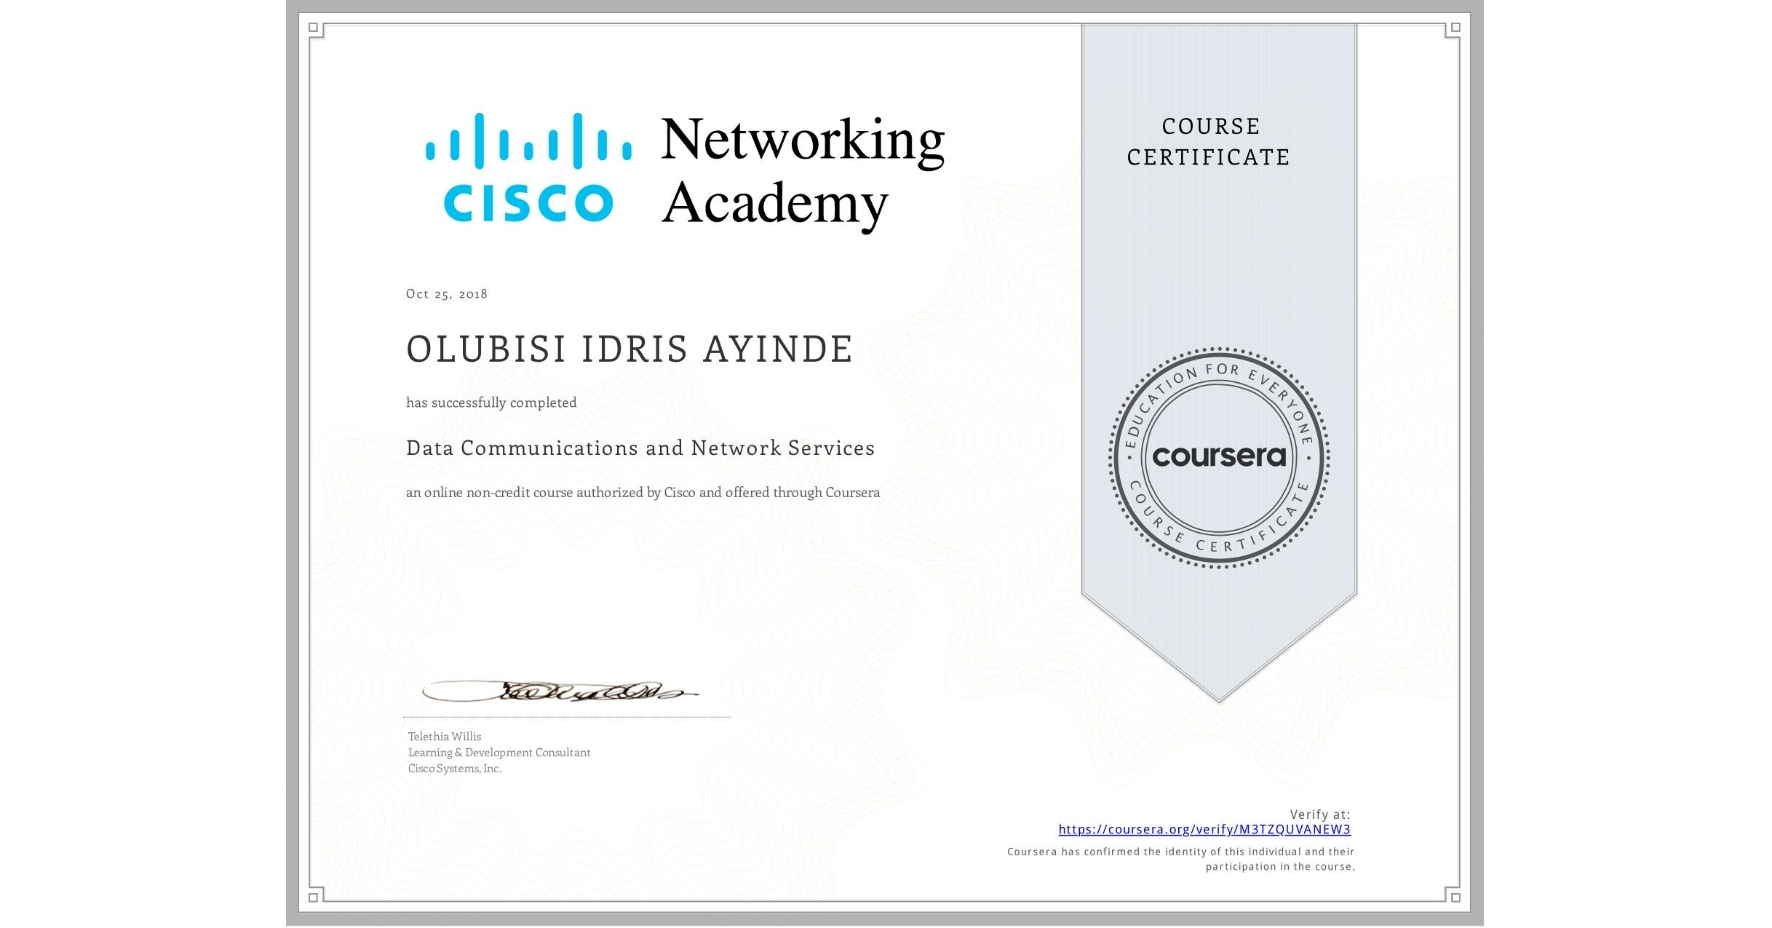 View certificate for OLUBISI IDRIS AYINDE, Data Communications and Network Services, an online non-credit course authorized by Cisco and offered through Coursera